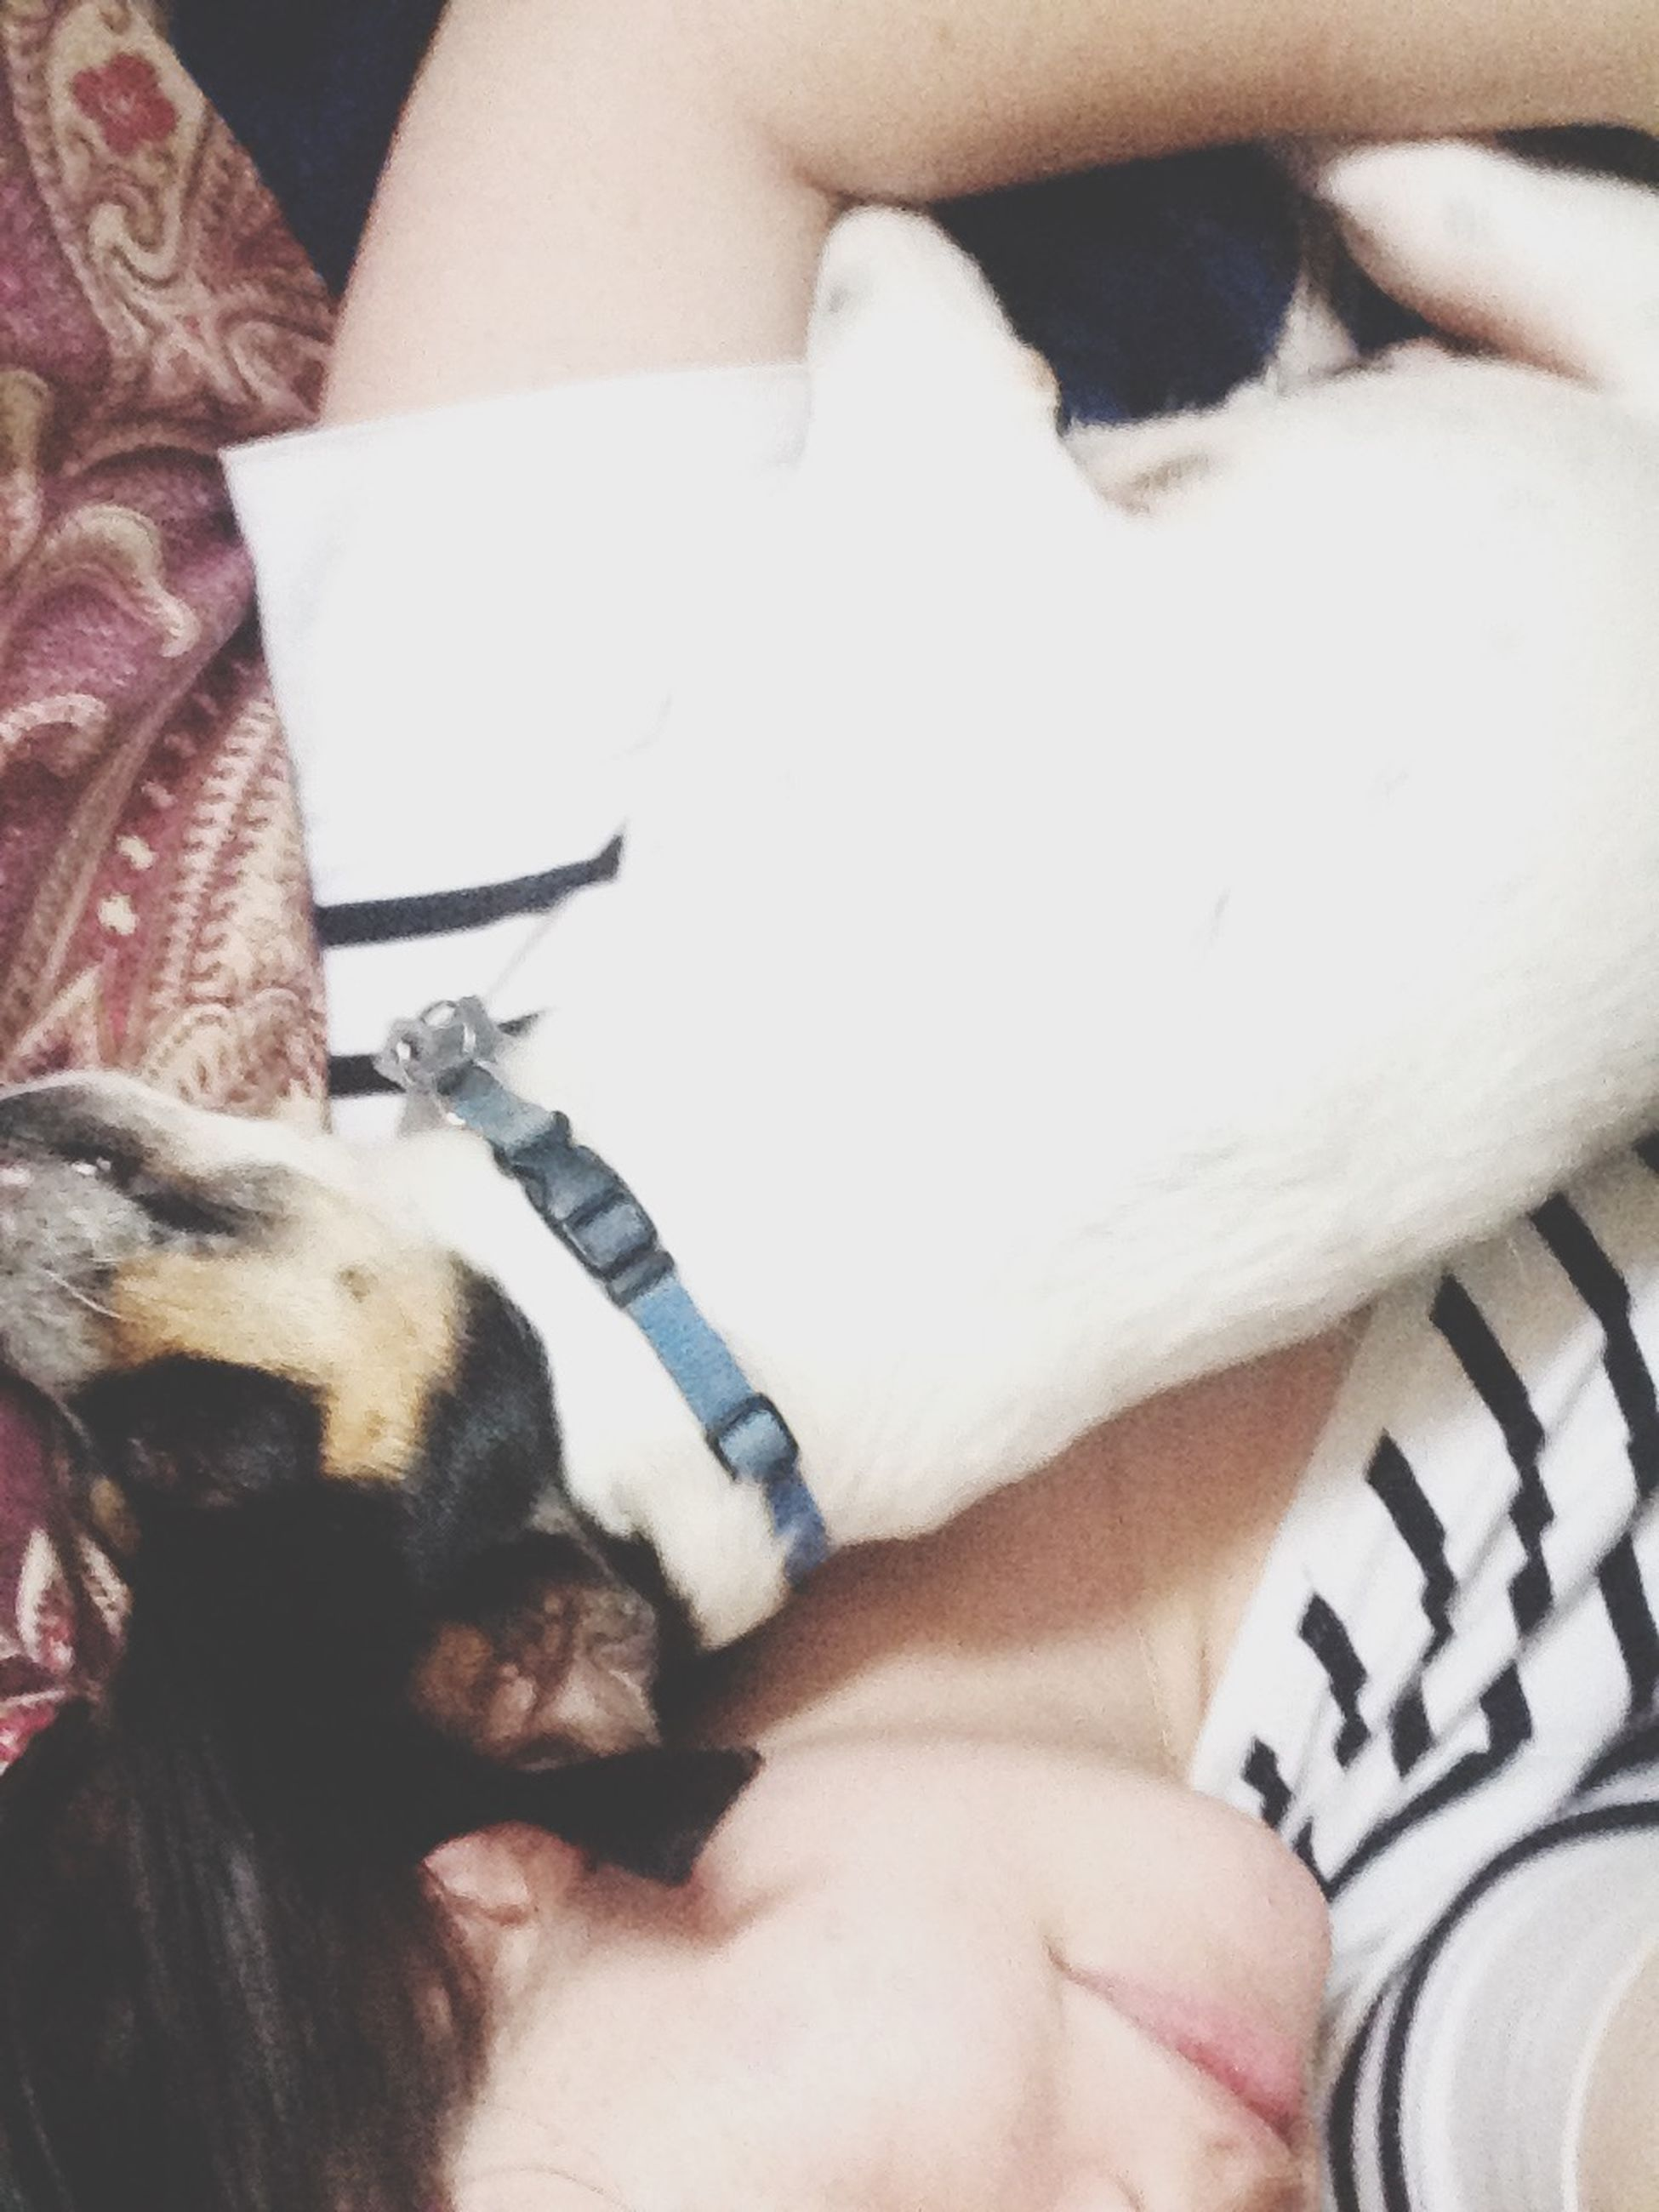 person, lifestyles, indoors, togetherness, leisure activity, bonding, relaxation, part of, lying down, love, bed, midsection, home interior, pet owner, cropped